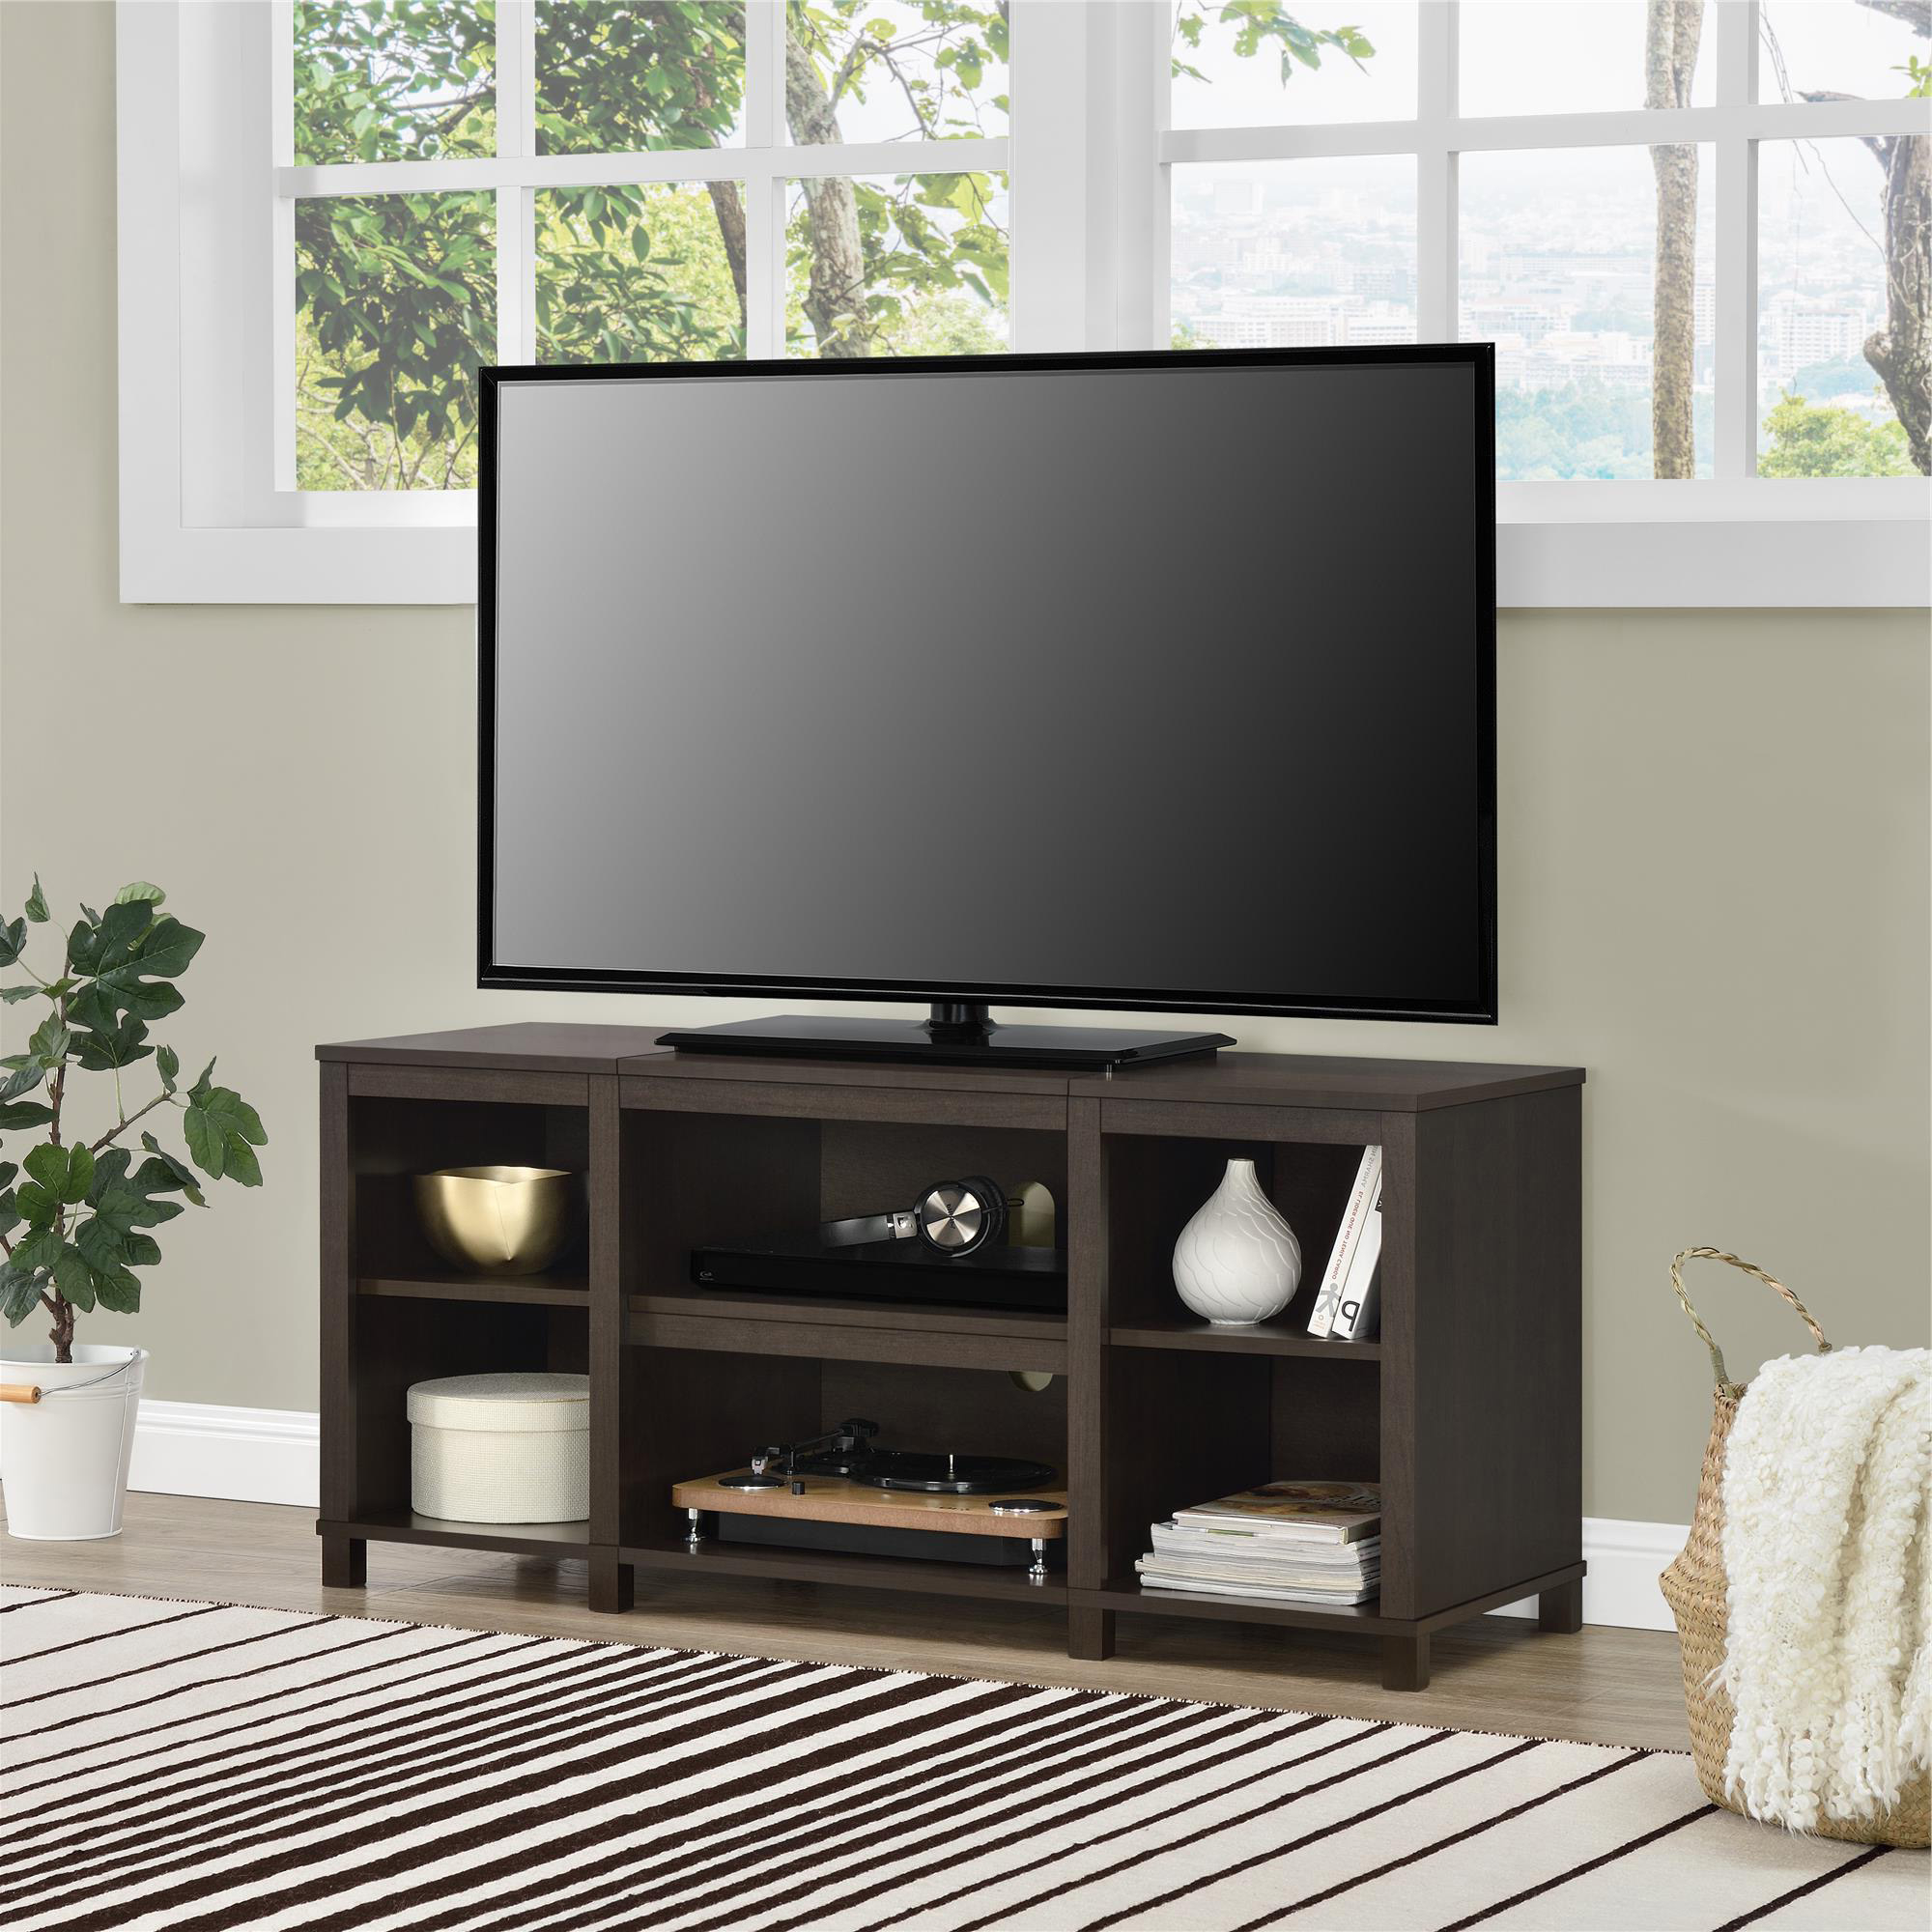 Tv Stand For 50 Inch Tv Media Center Storage Shelves Wood Flat With Regard To Canyon 74 Inch Tv Stands (View 14 of 20)